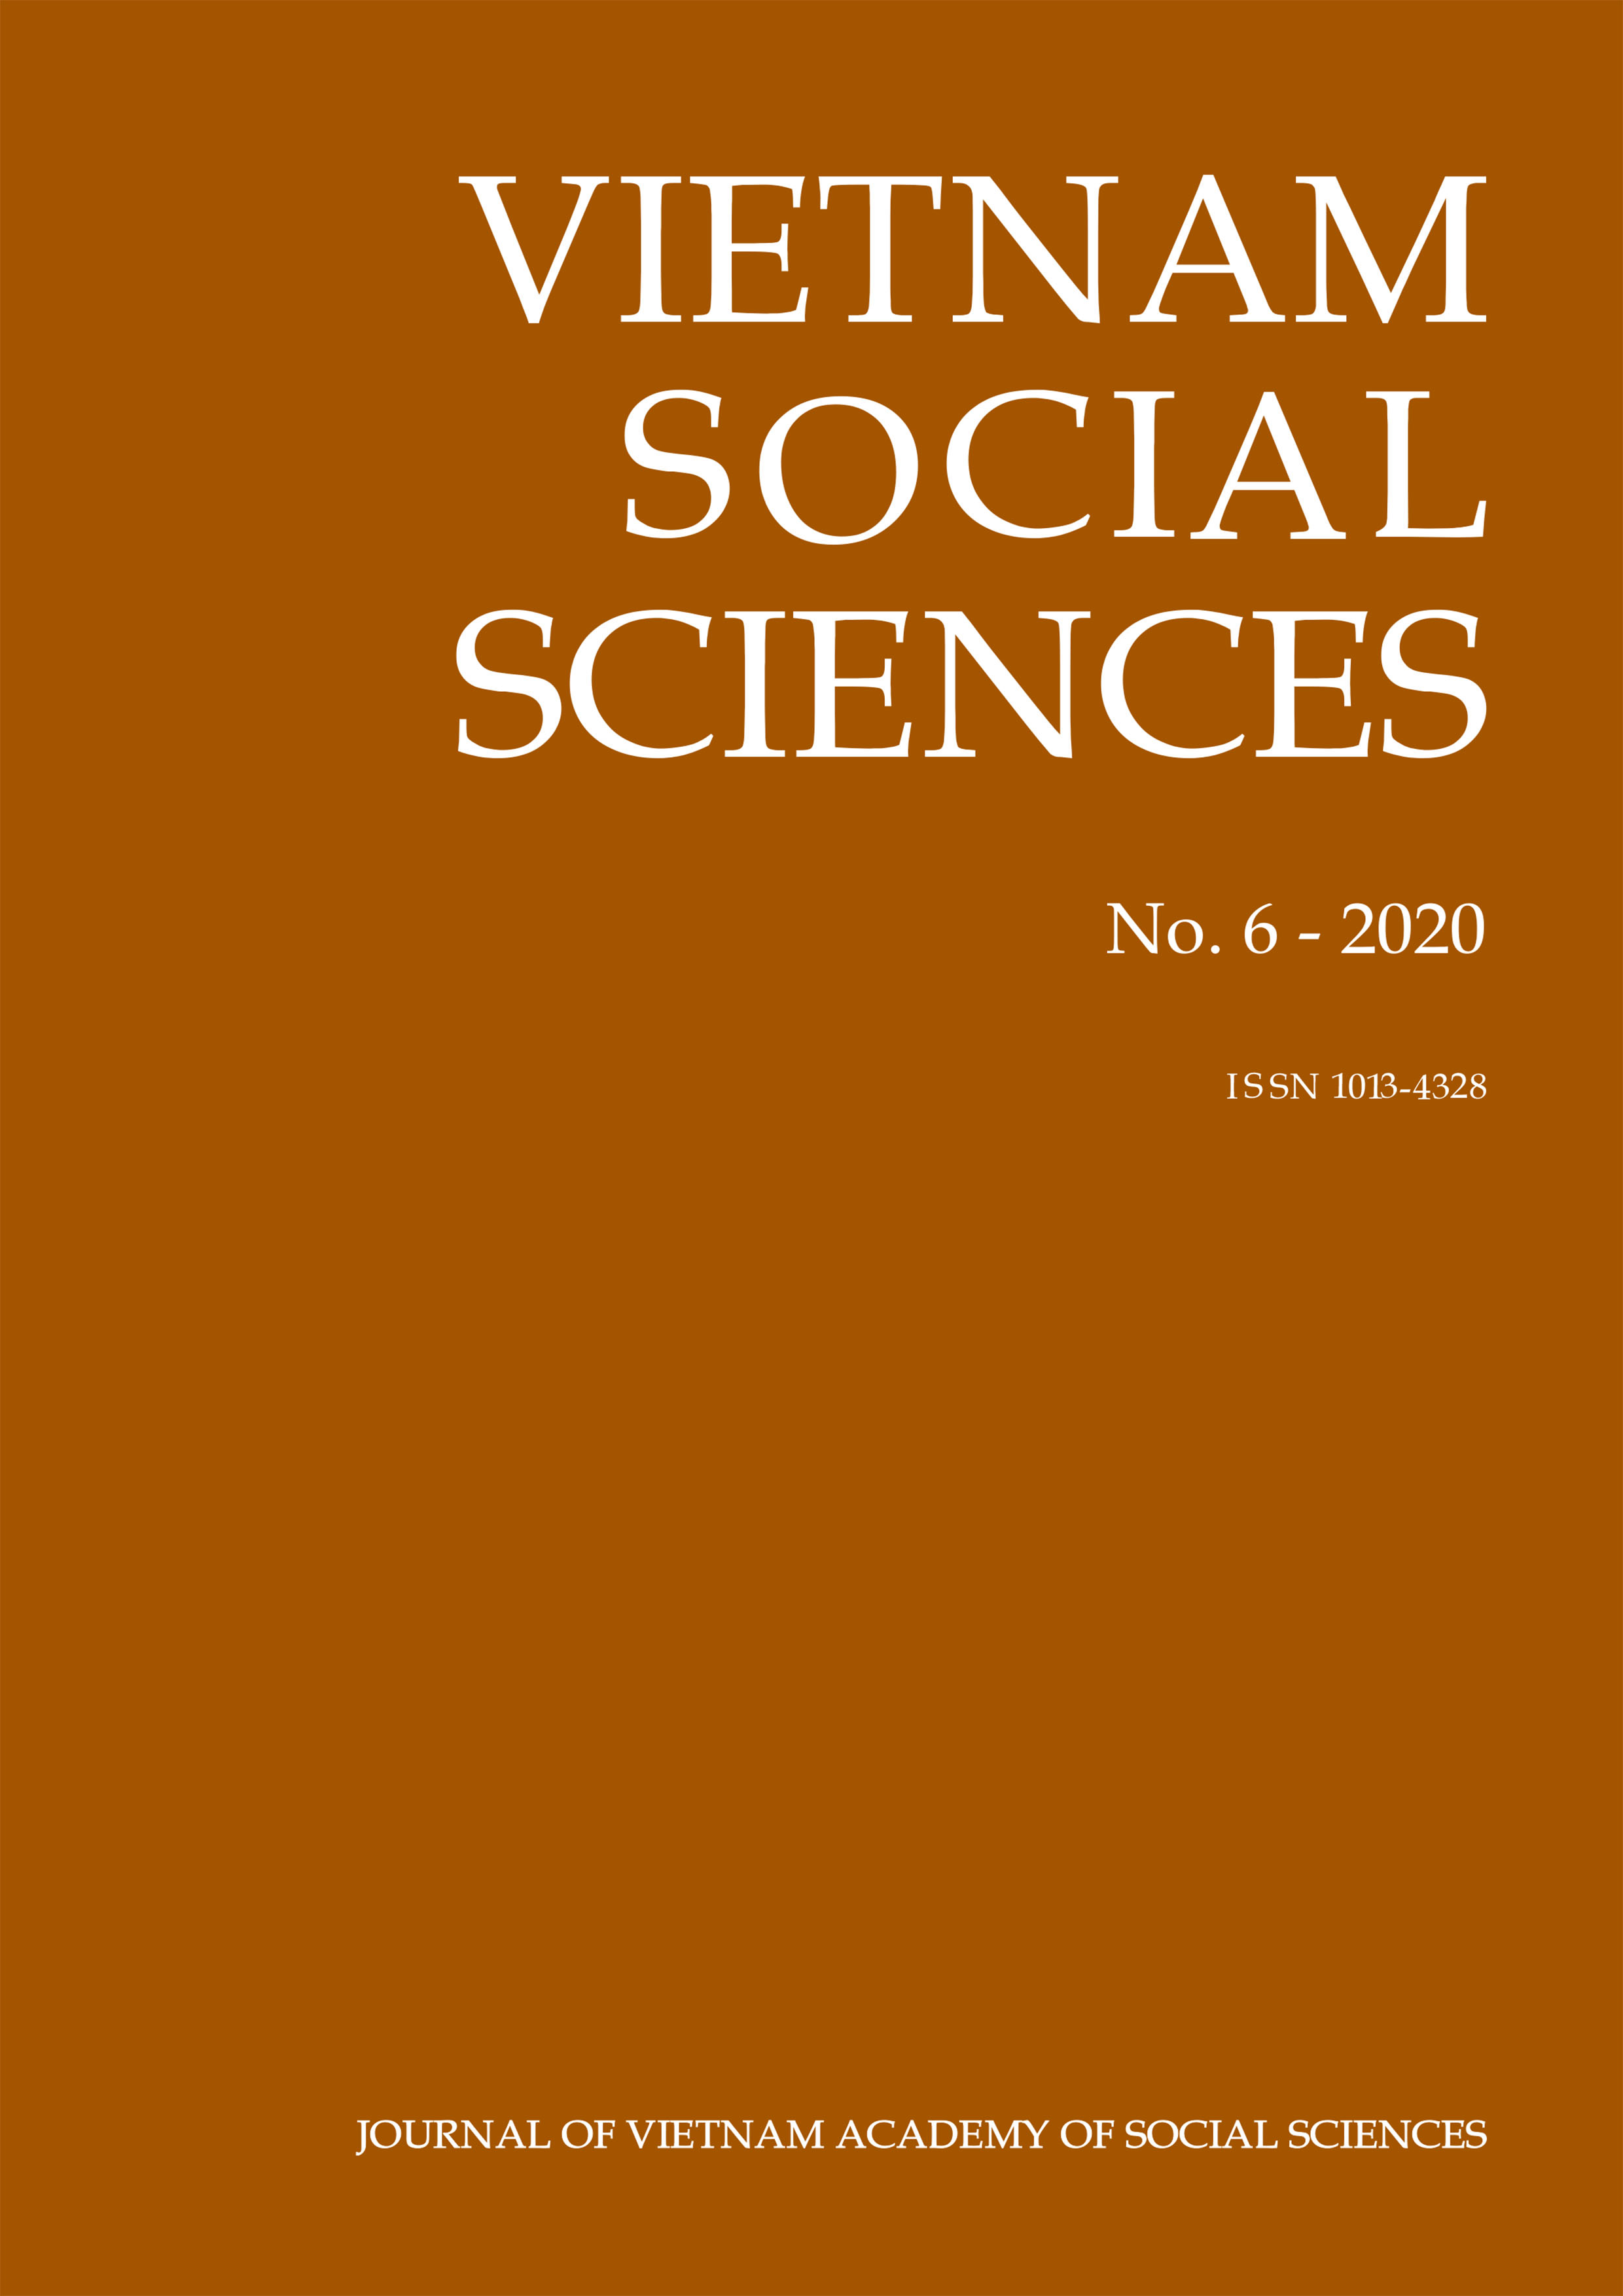 Vietnam Social Sciences. No. 6 - 2020